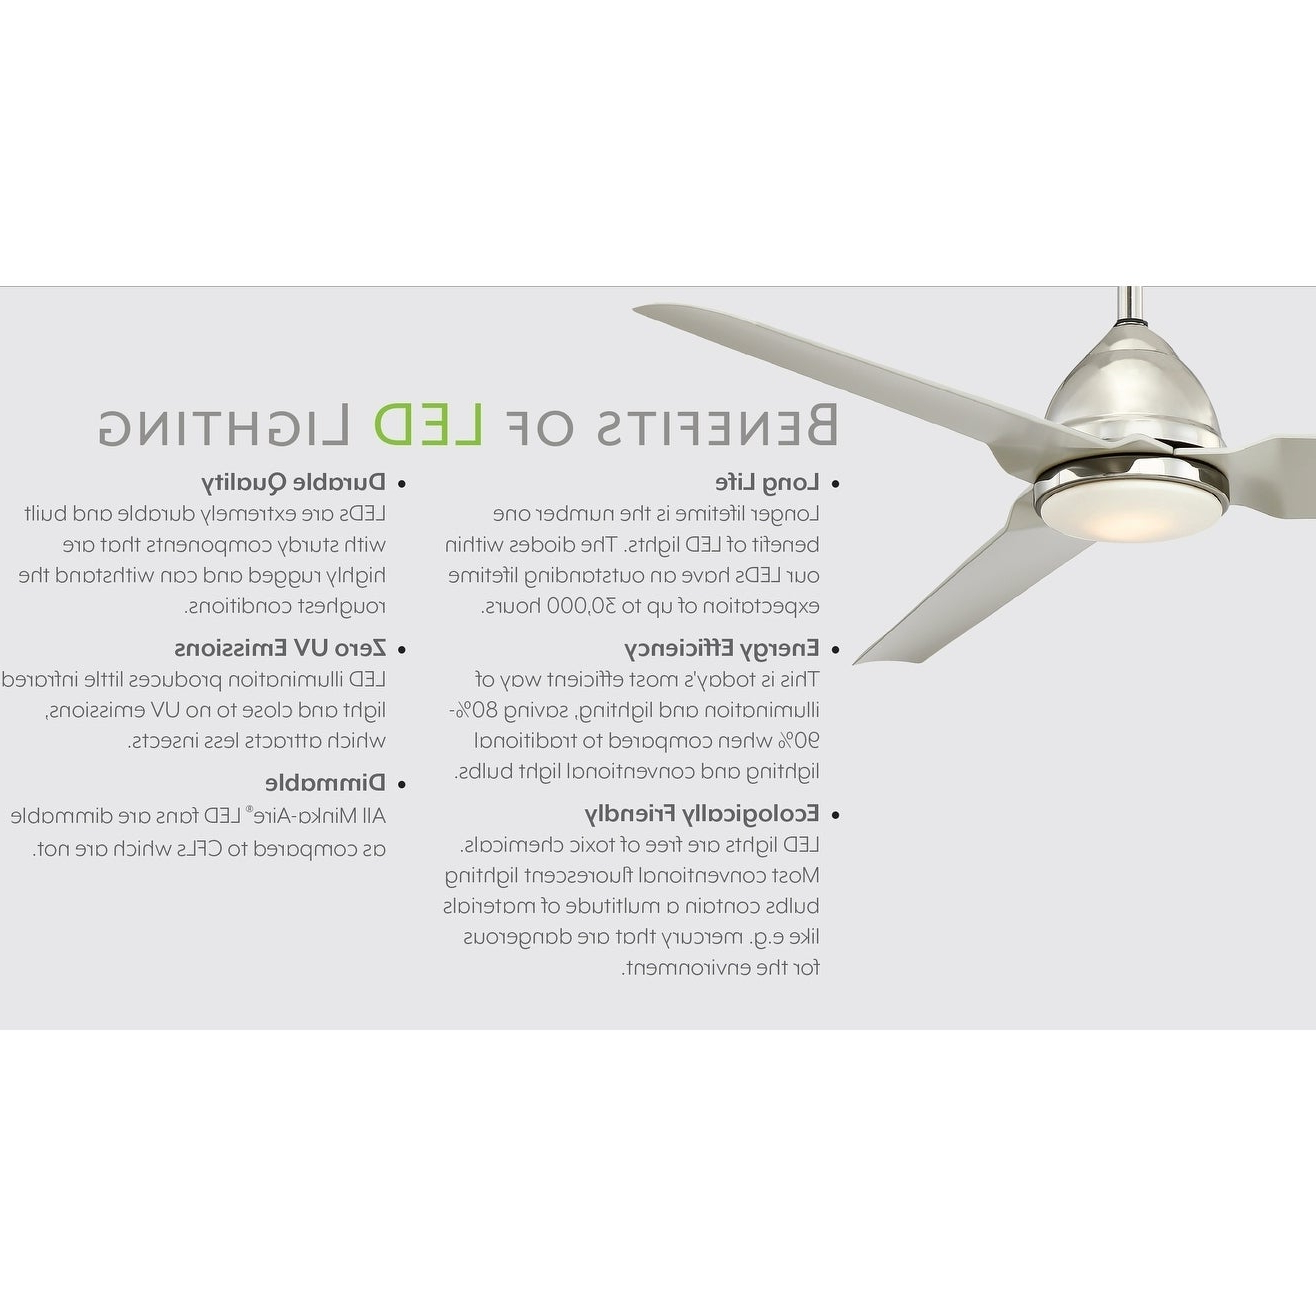 Famous Classica 5 Blade Ceiling Fans In Classica Uni Pack Ceiling Fan In Provencal Blanc Finish W/ Provencal Blanc Bladesminka Aire – N/a (View 15 of 20)